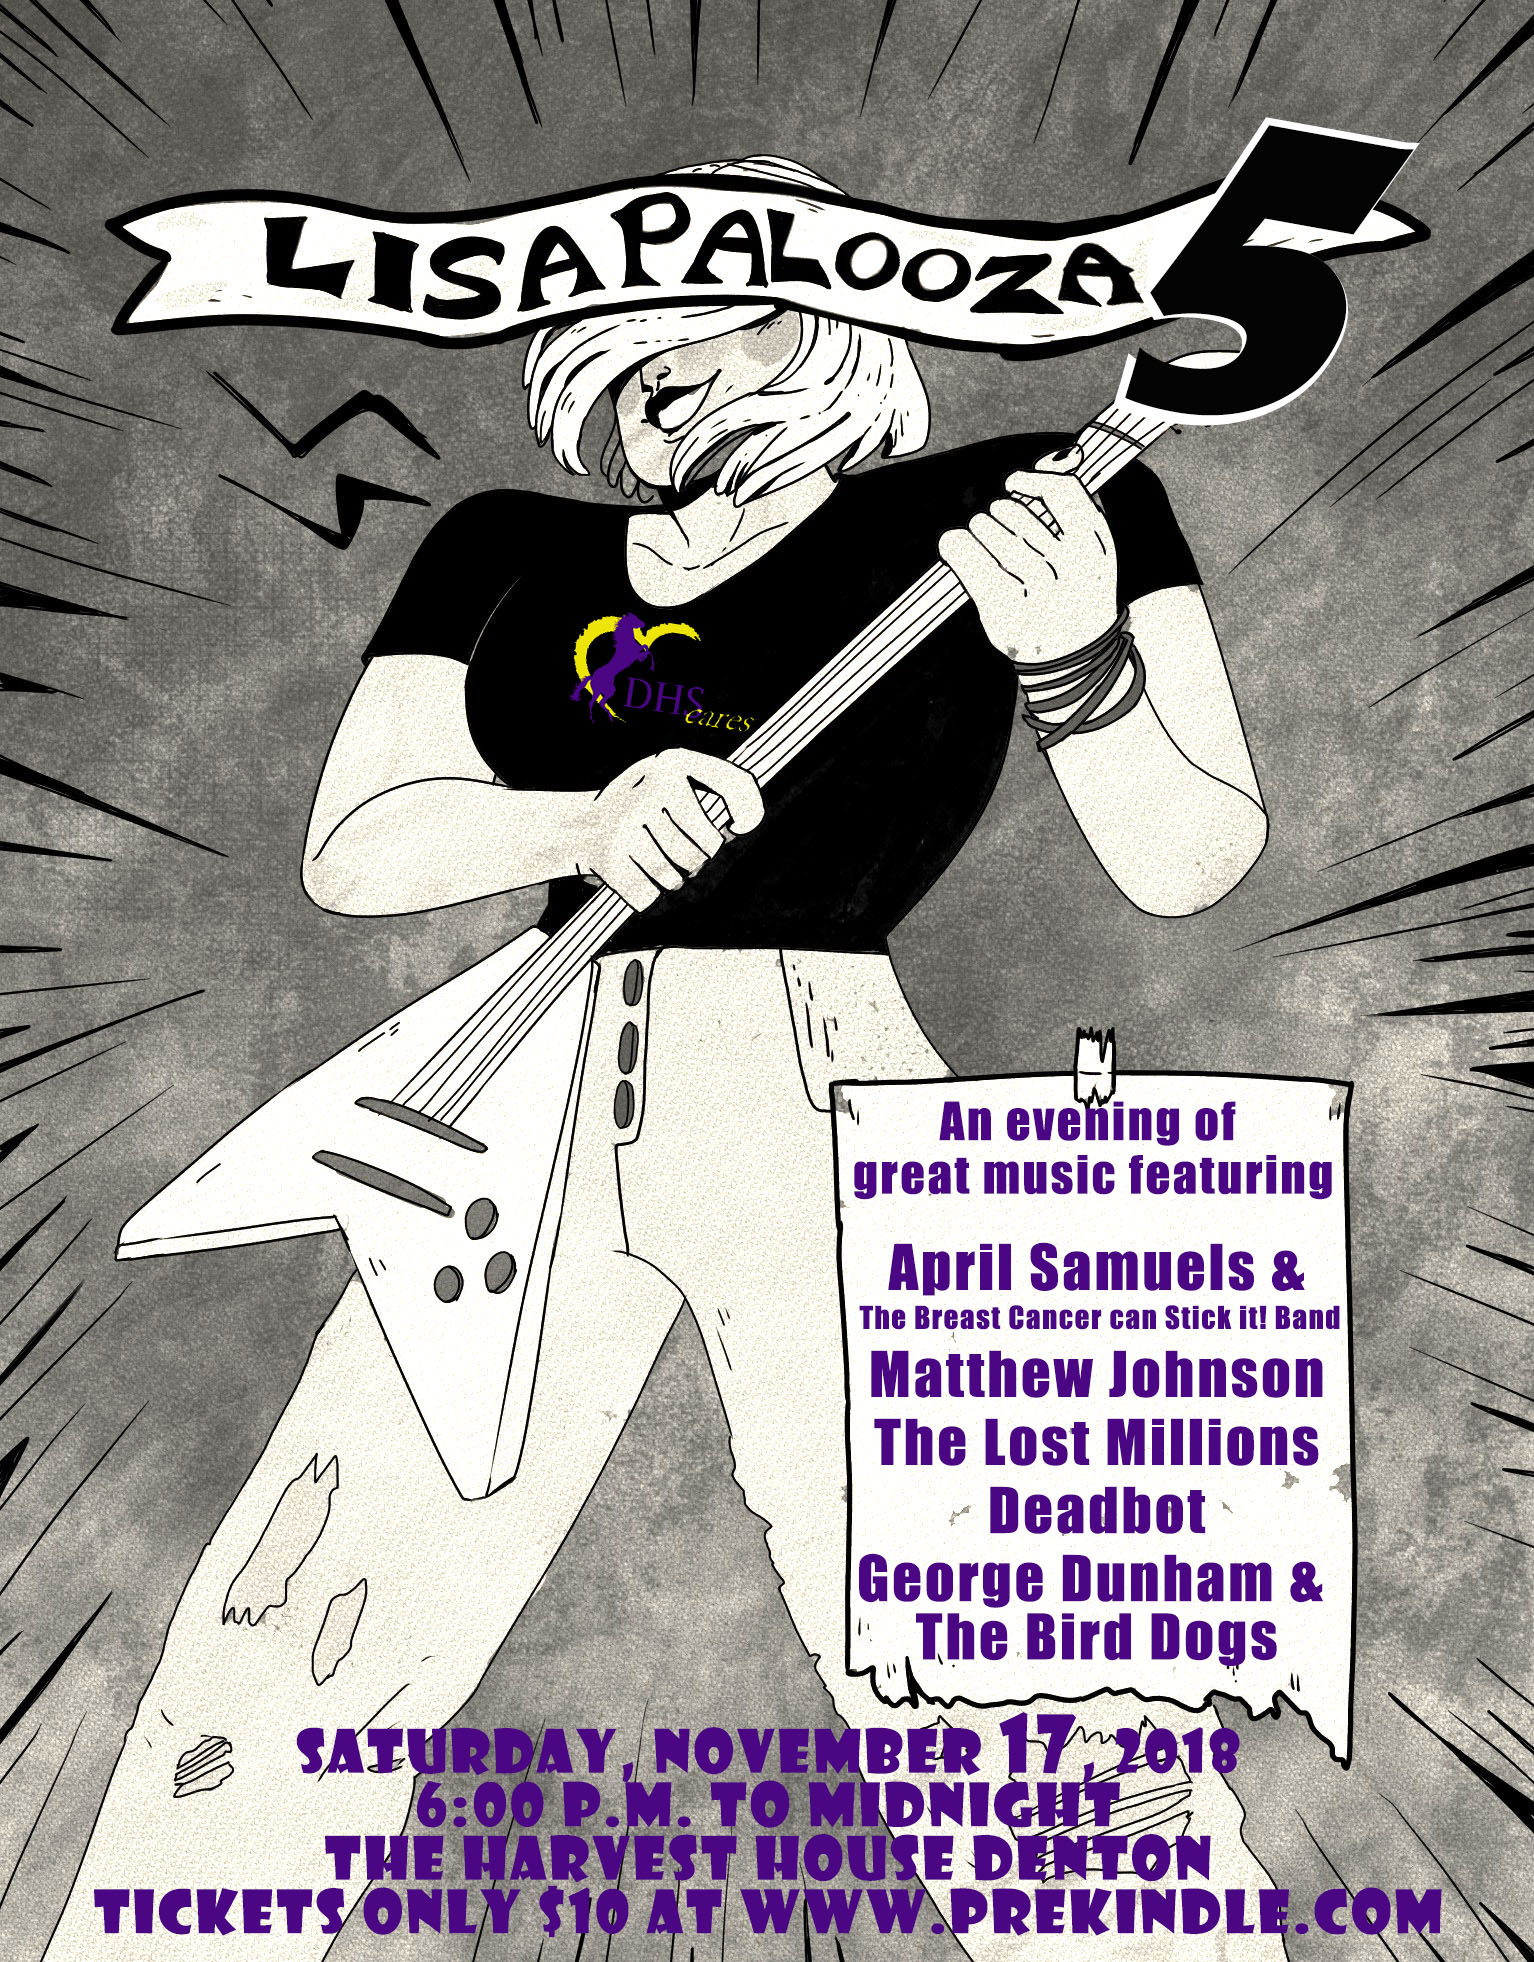 Denton High Cares Awards Scholarship to Winner of Lisapalooza 5 Poster Contest